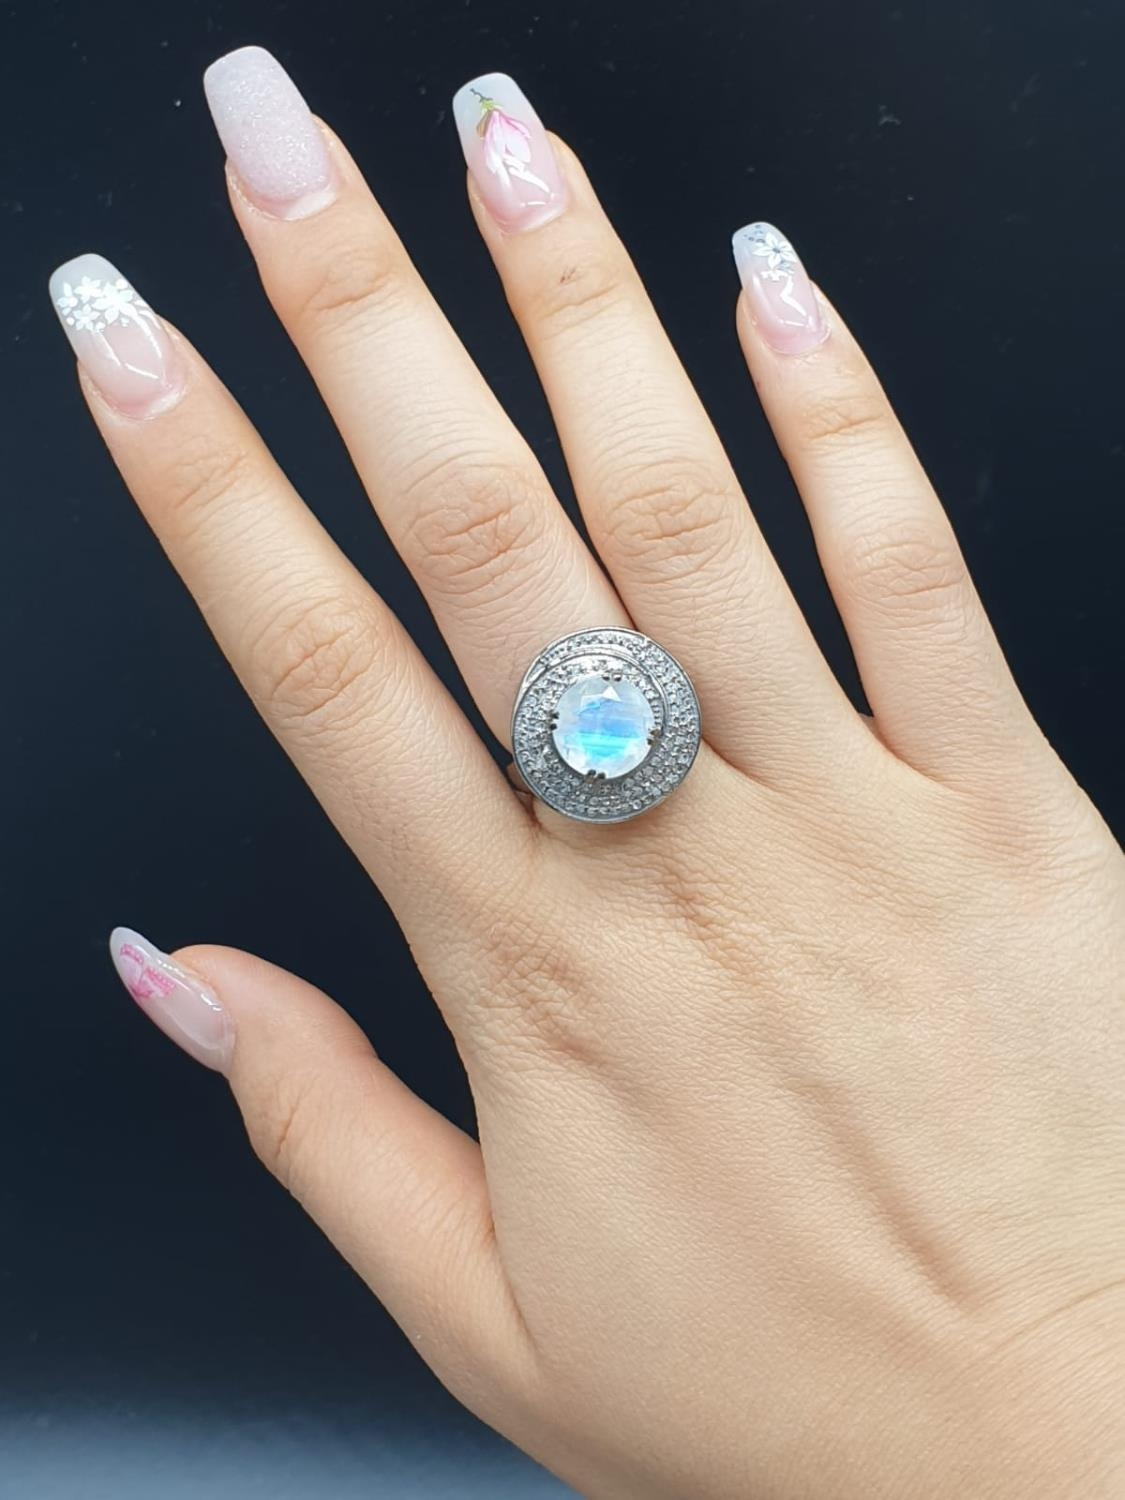 4 Ct Moonstone Ring with 0.75 Ct Rose cut diamonds. Blackened silver. - Image 7 of 8